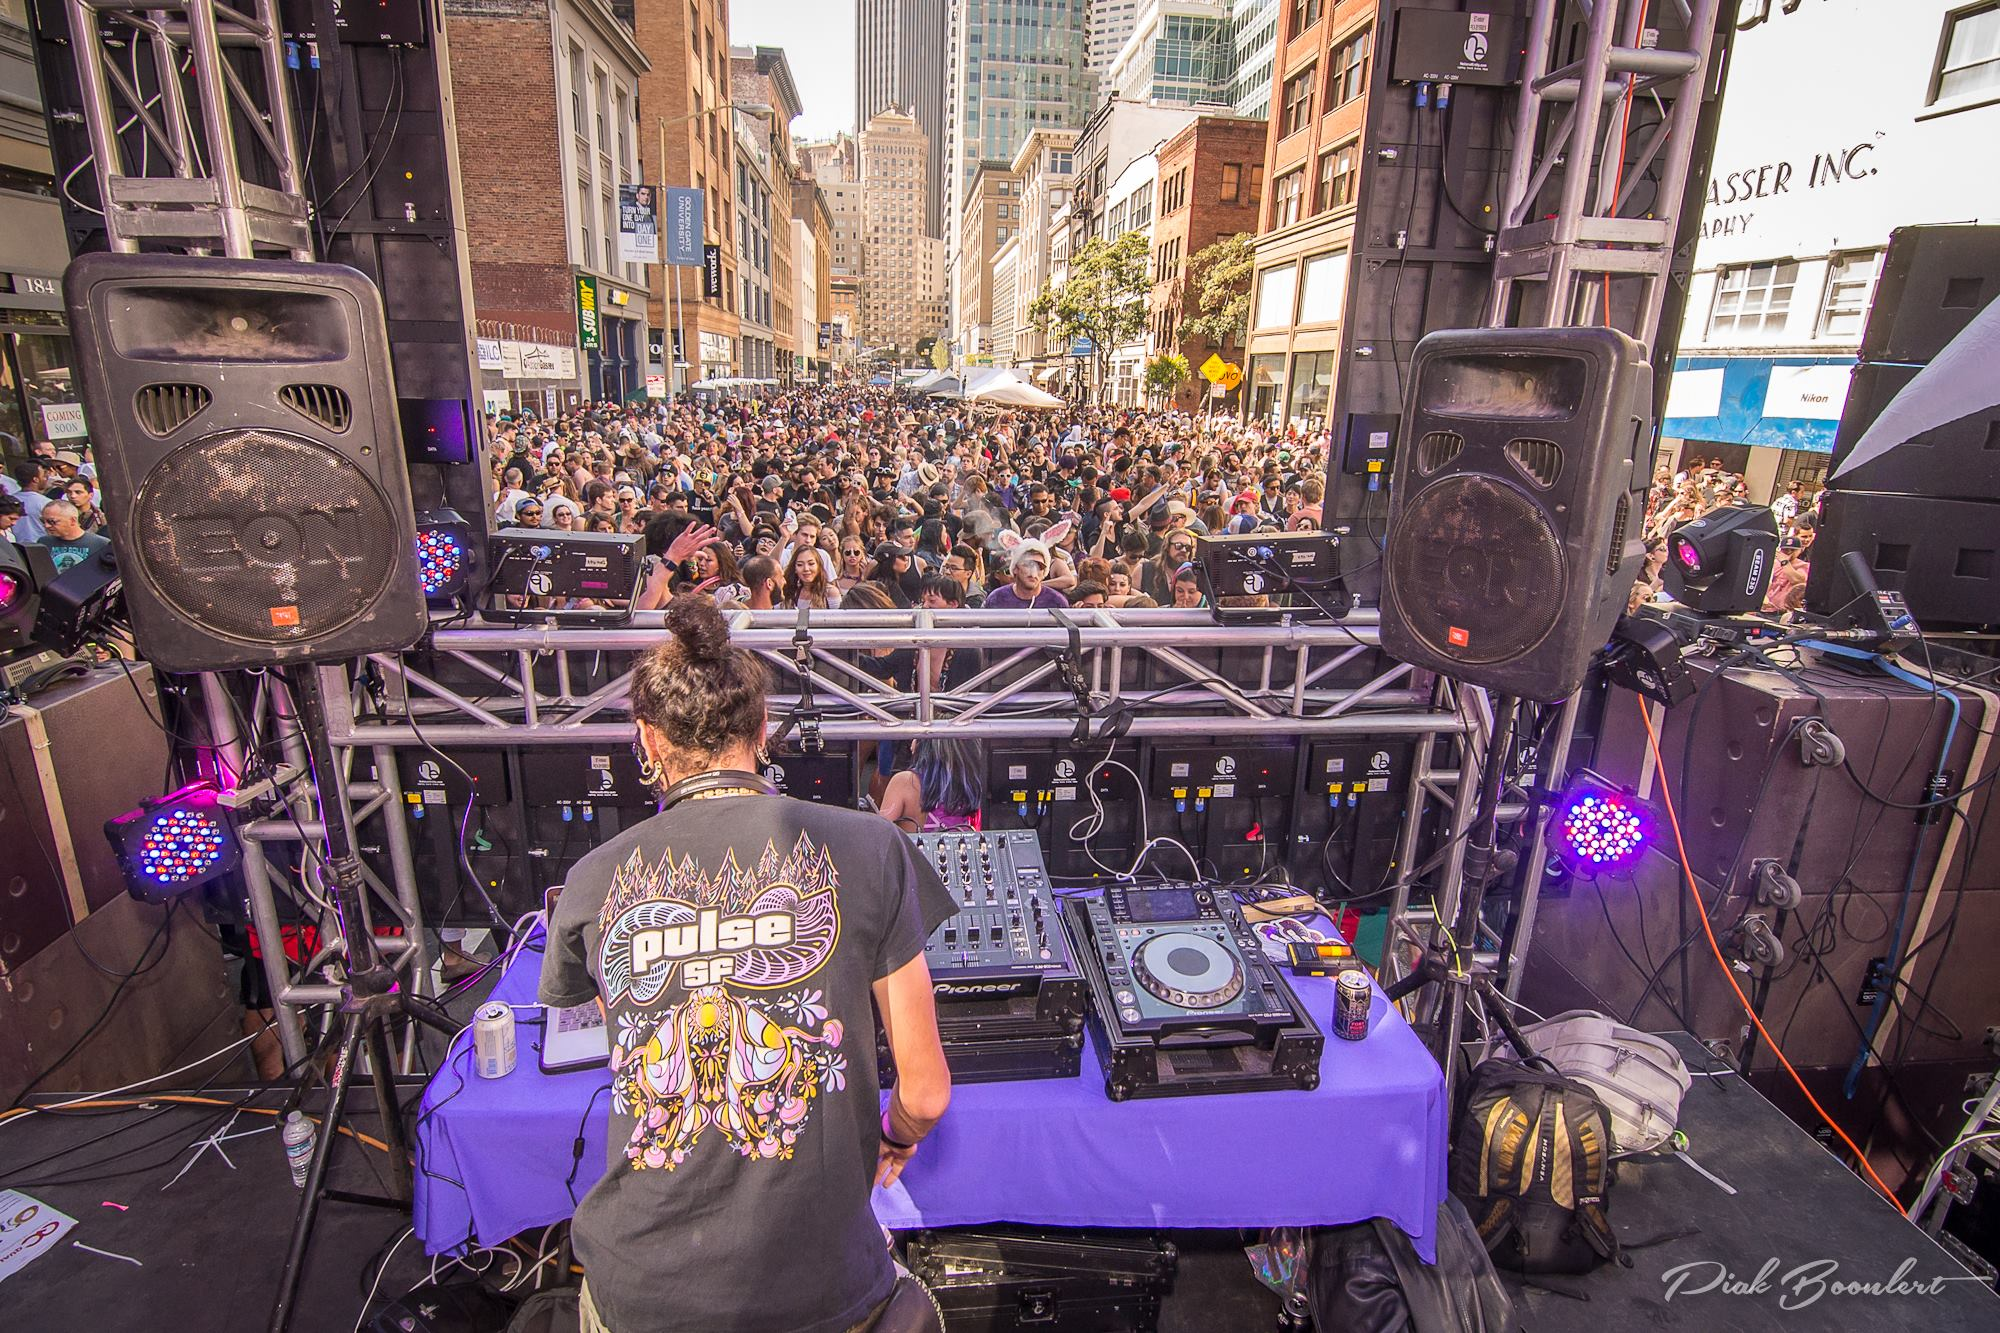 View from behind Pulse SF Stage; photo by Piak Boonlert